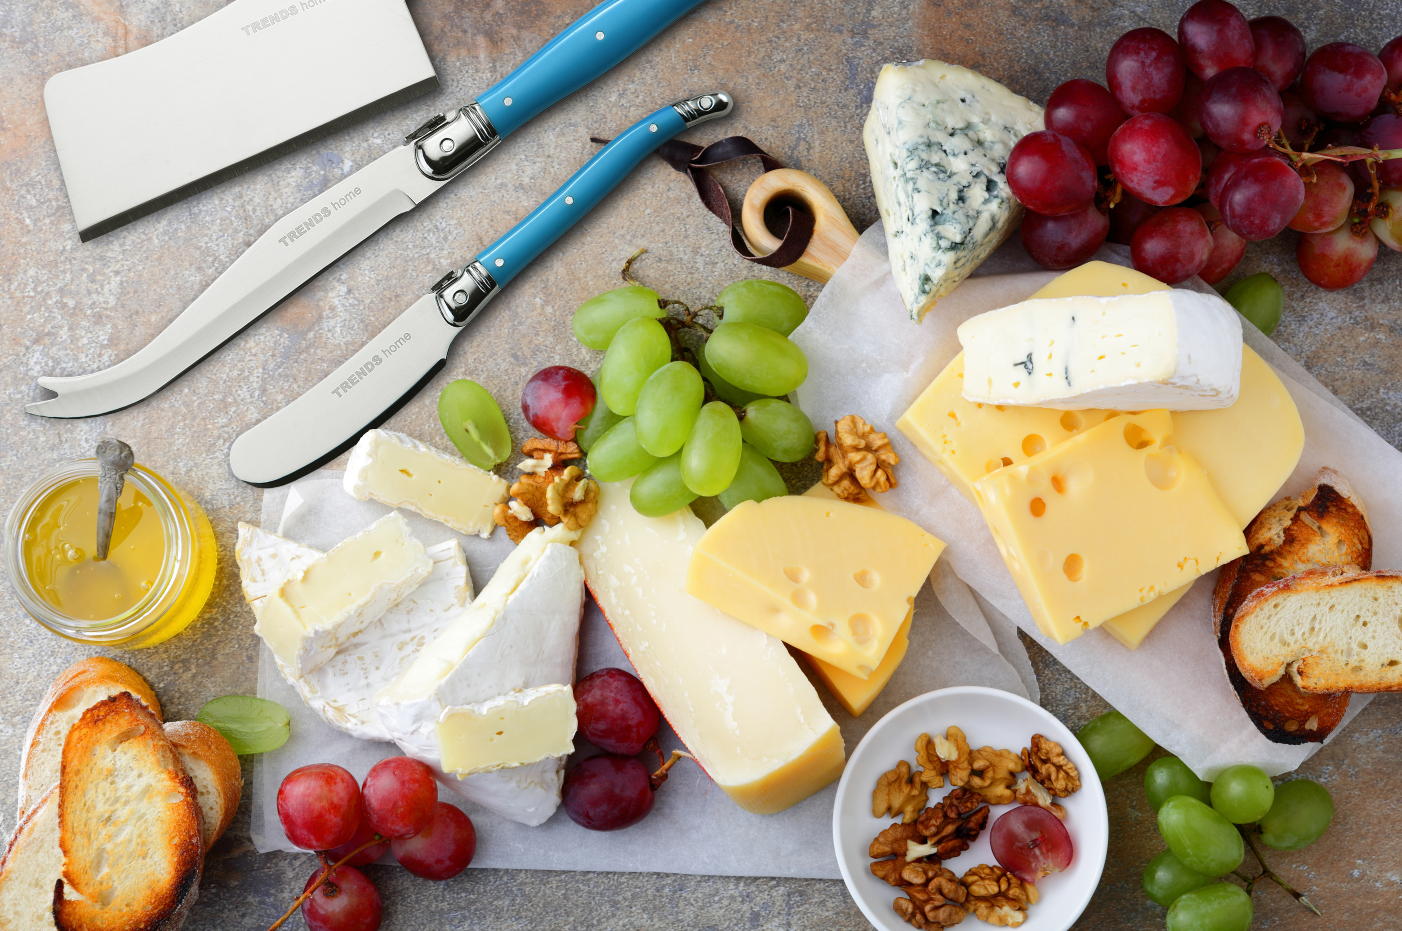 Cheese Knife Guide: Quick Tips For Choosing The Right Knife